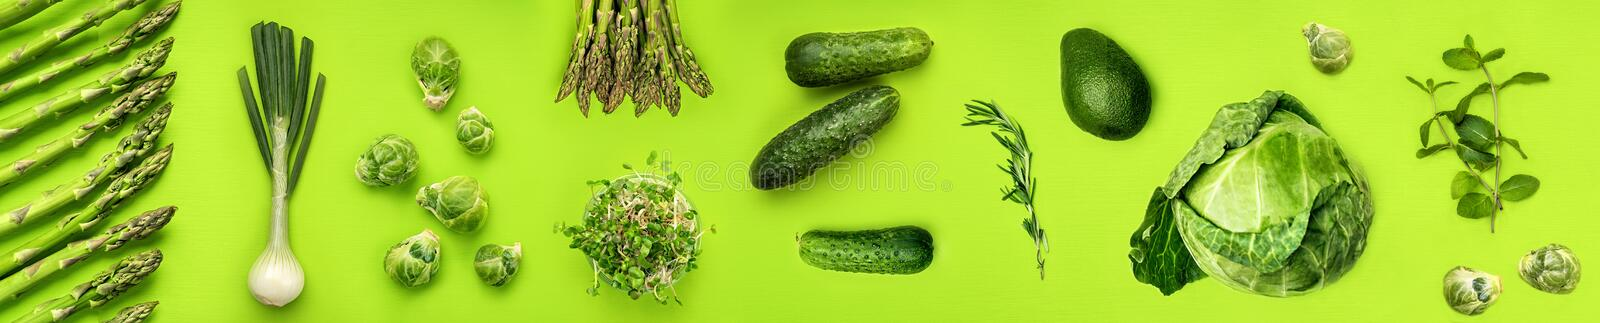 Wide green vegetables flat lay concept on green background stock image